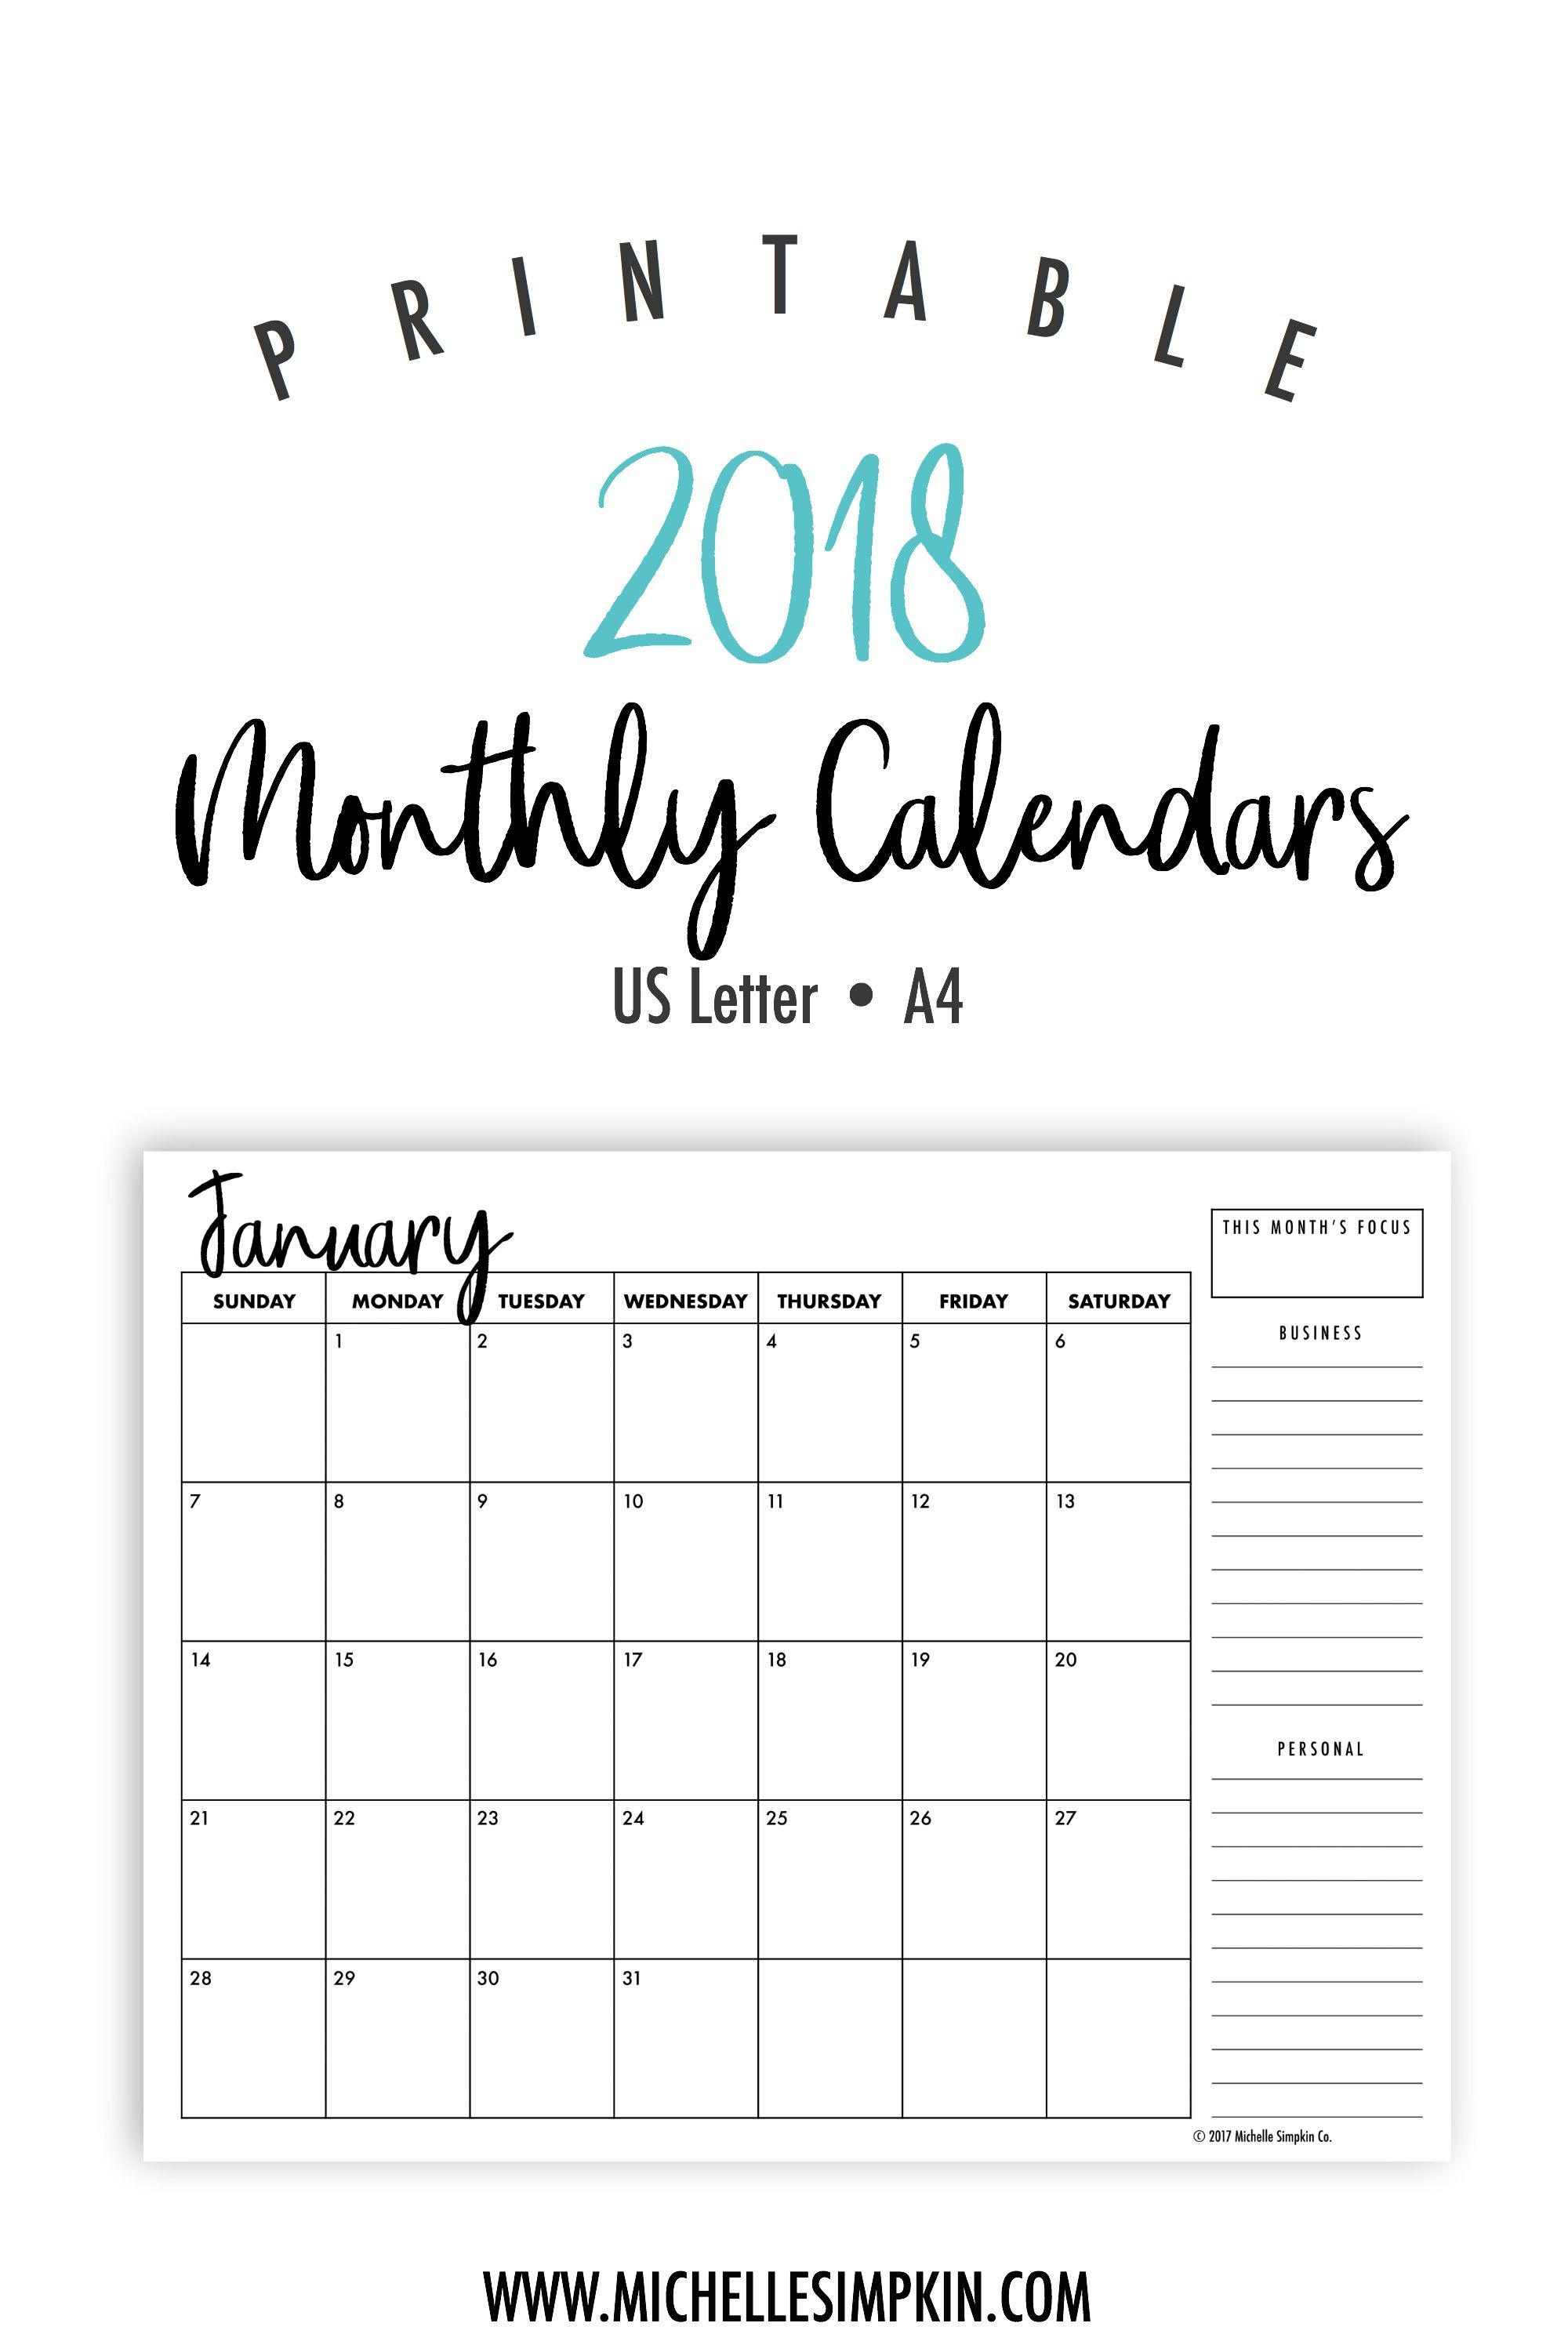 December 123 Calendar Printable 2020 2018 Printable Calendars   Plan out your year with these ink